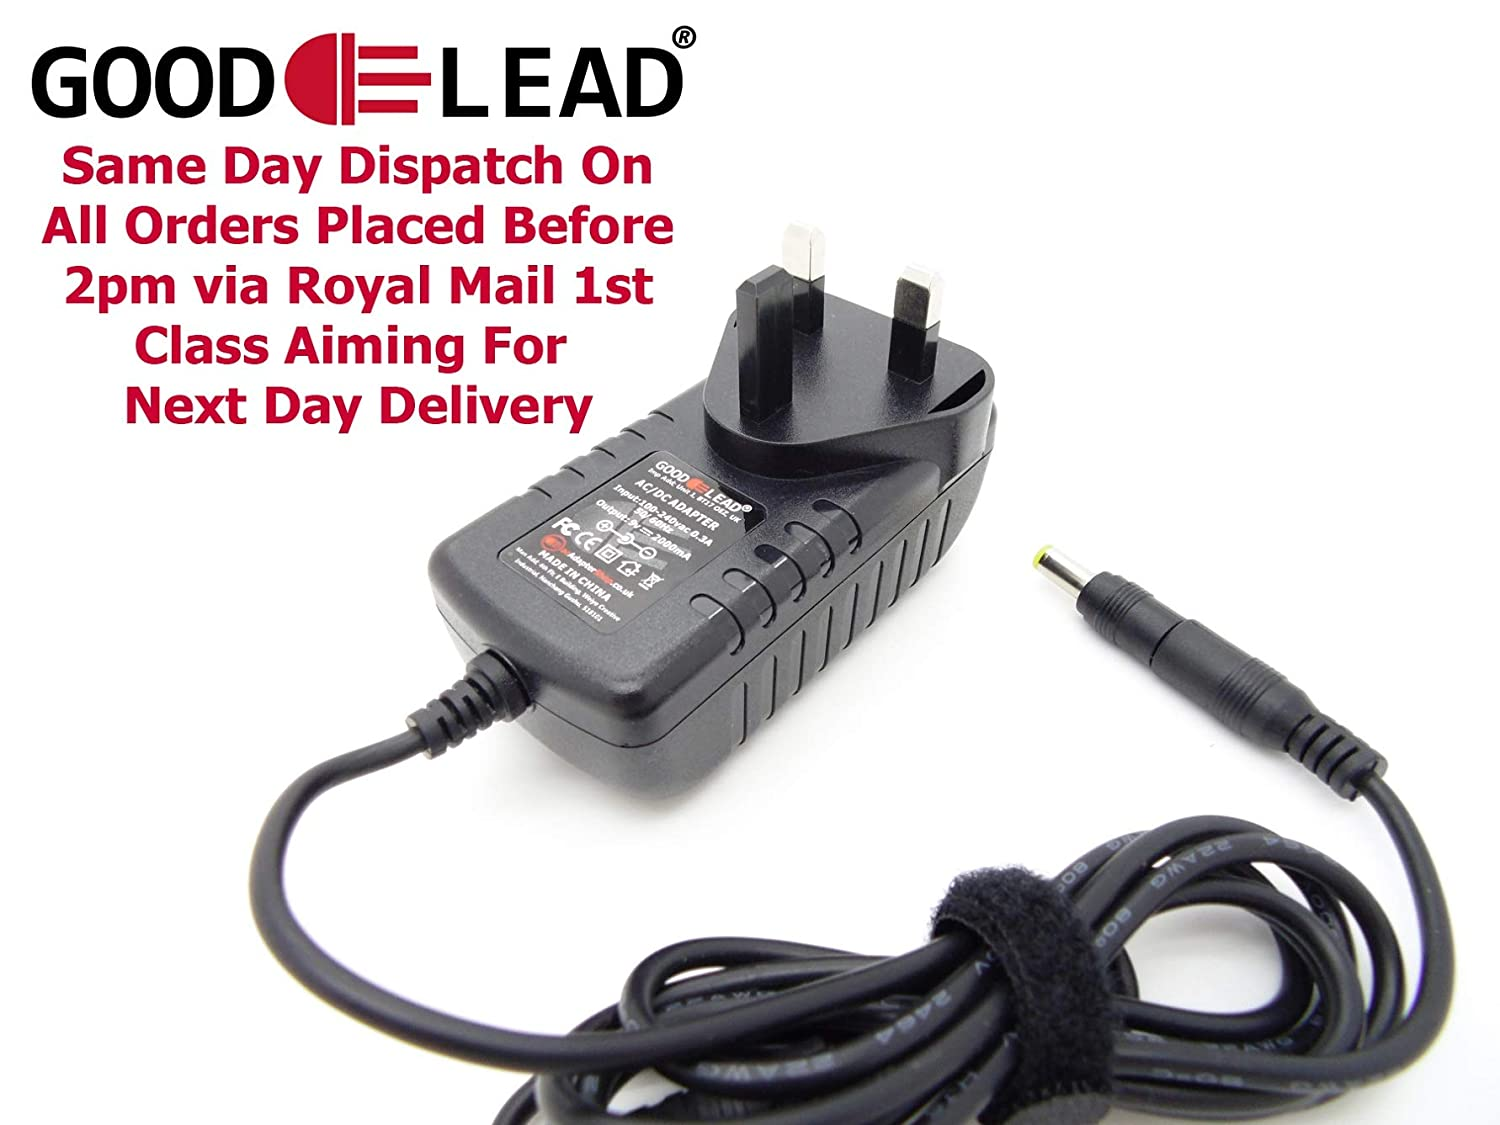 GOOD LEAD 9V ACDC Adaptor Power Supply Charger for Reebok ZR9 Crosstrainer Cross Trainer